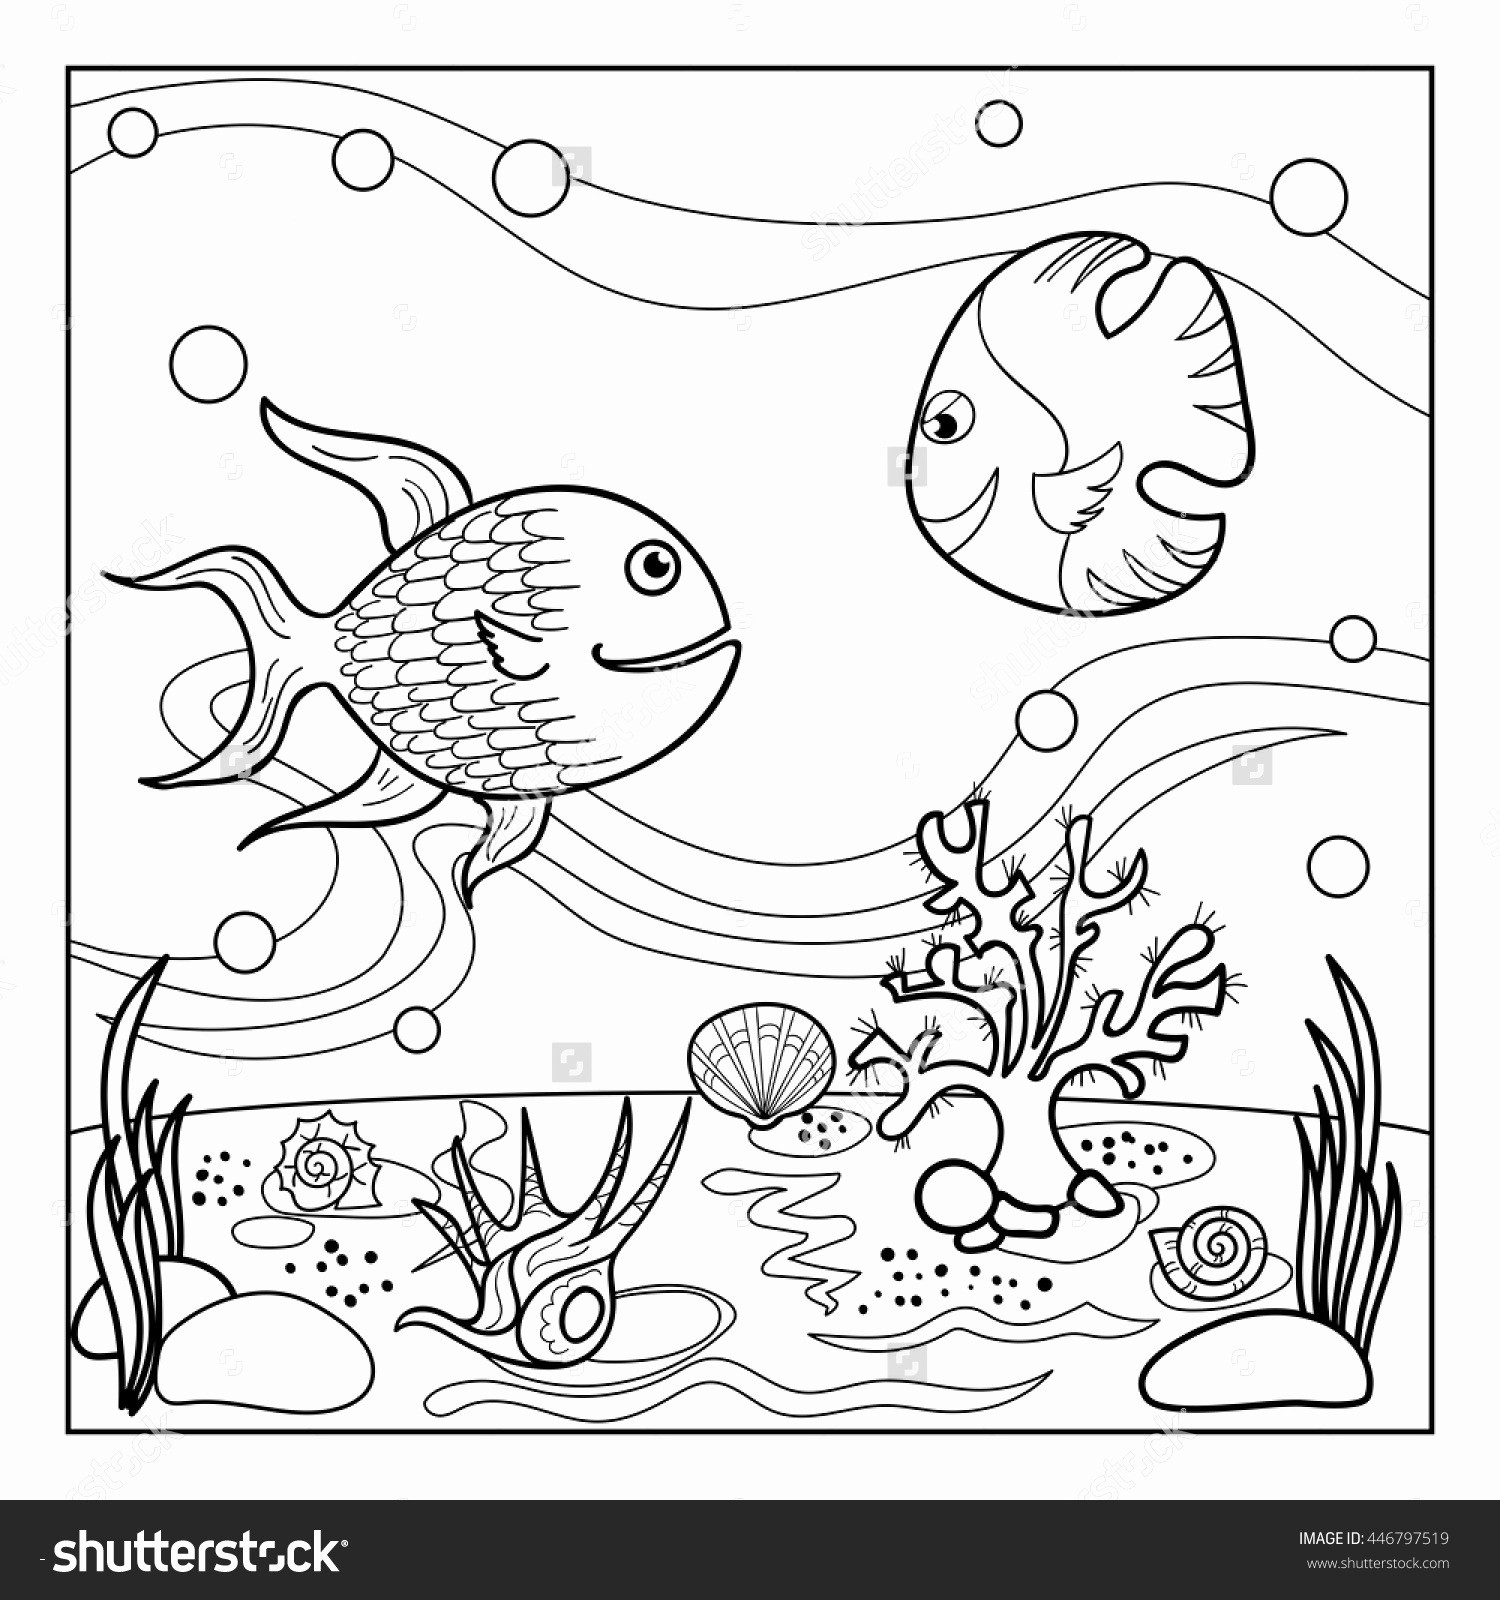 Shutterstock Coloring Pages  Download 10d - To print for your project